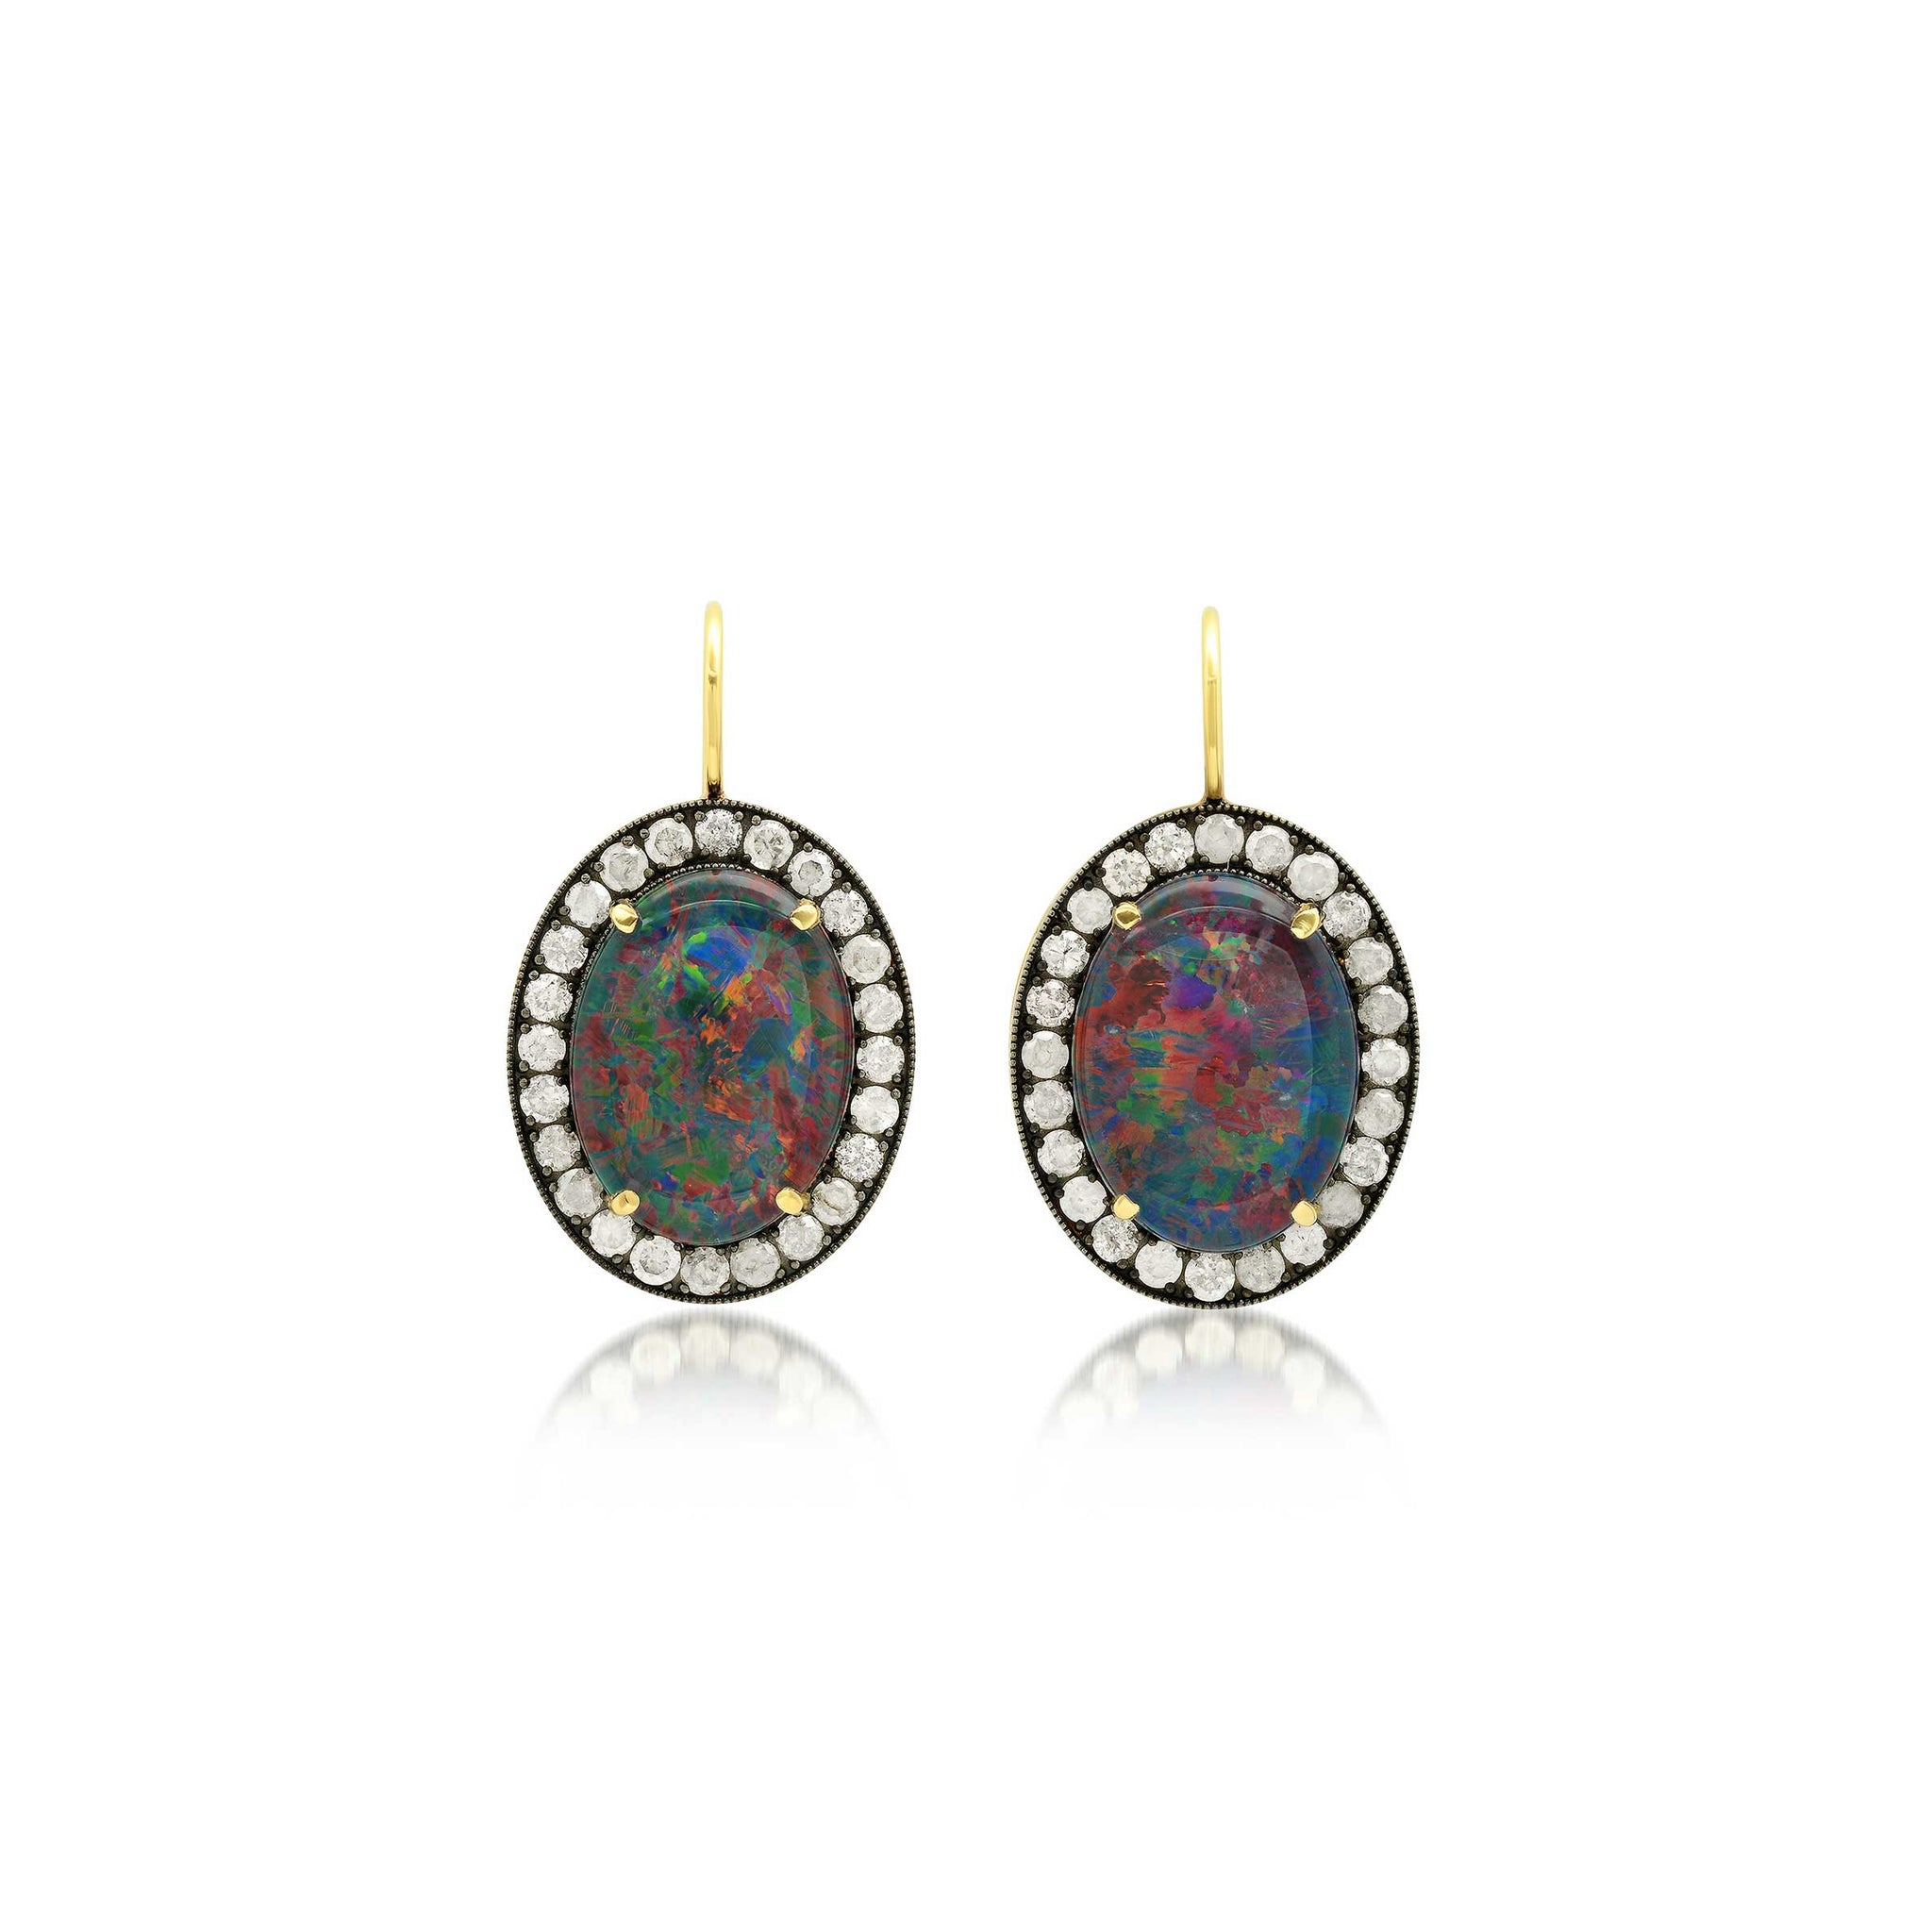 KAT AUSTRALIAN OPAL EARRINGS